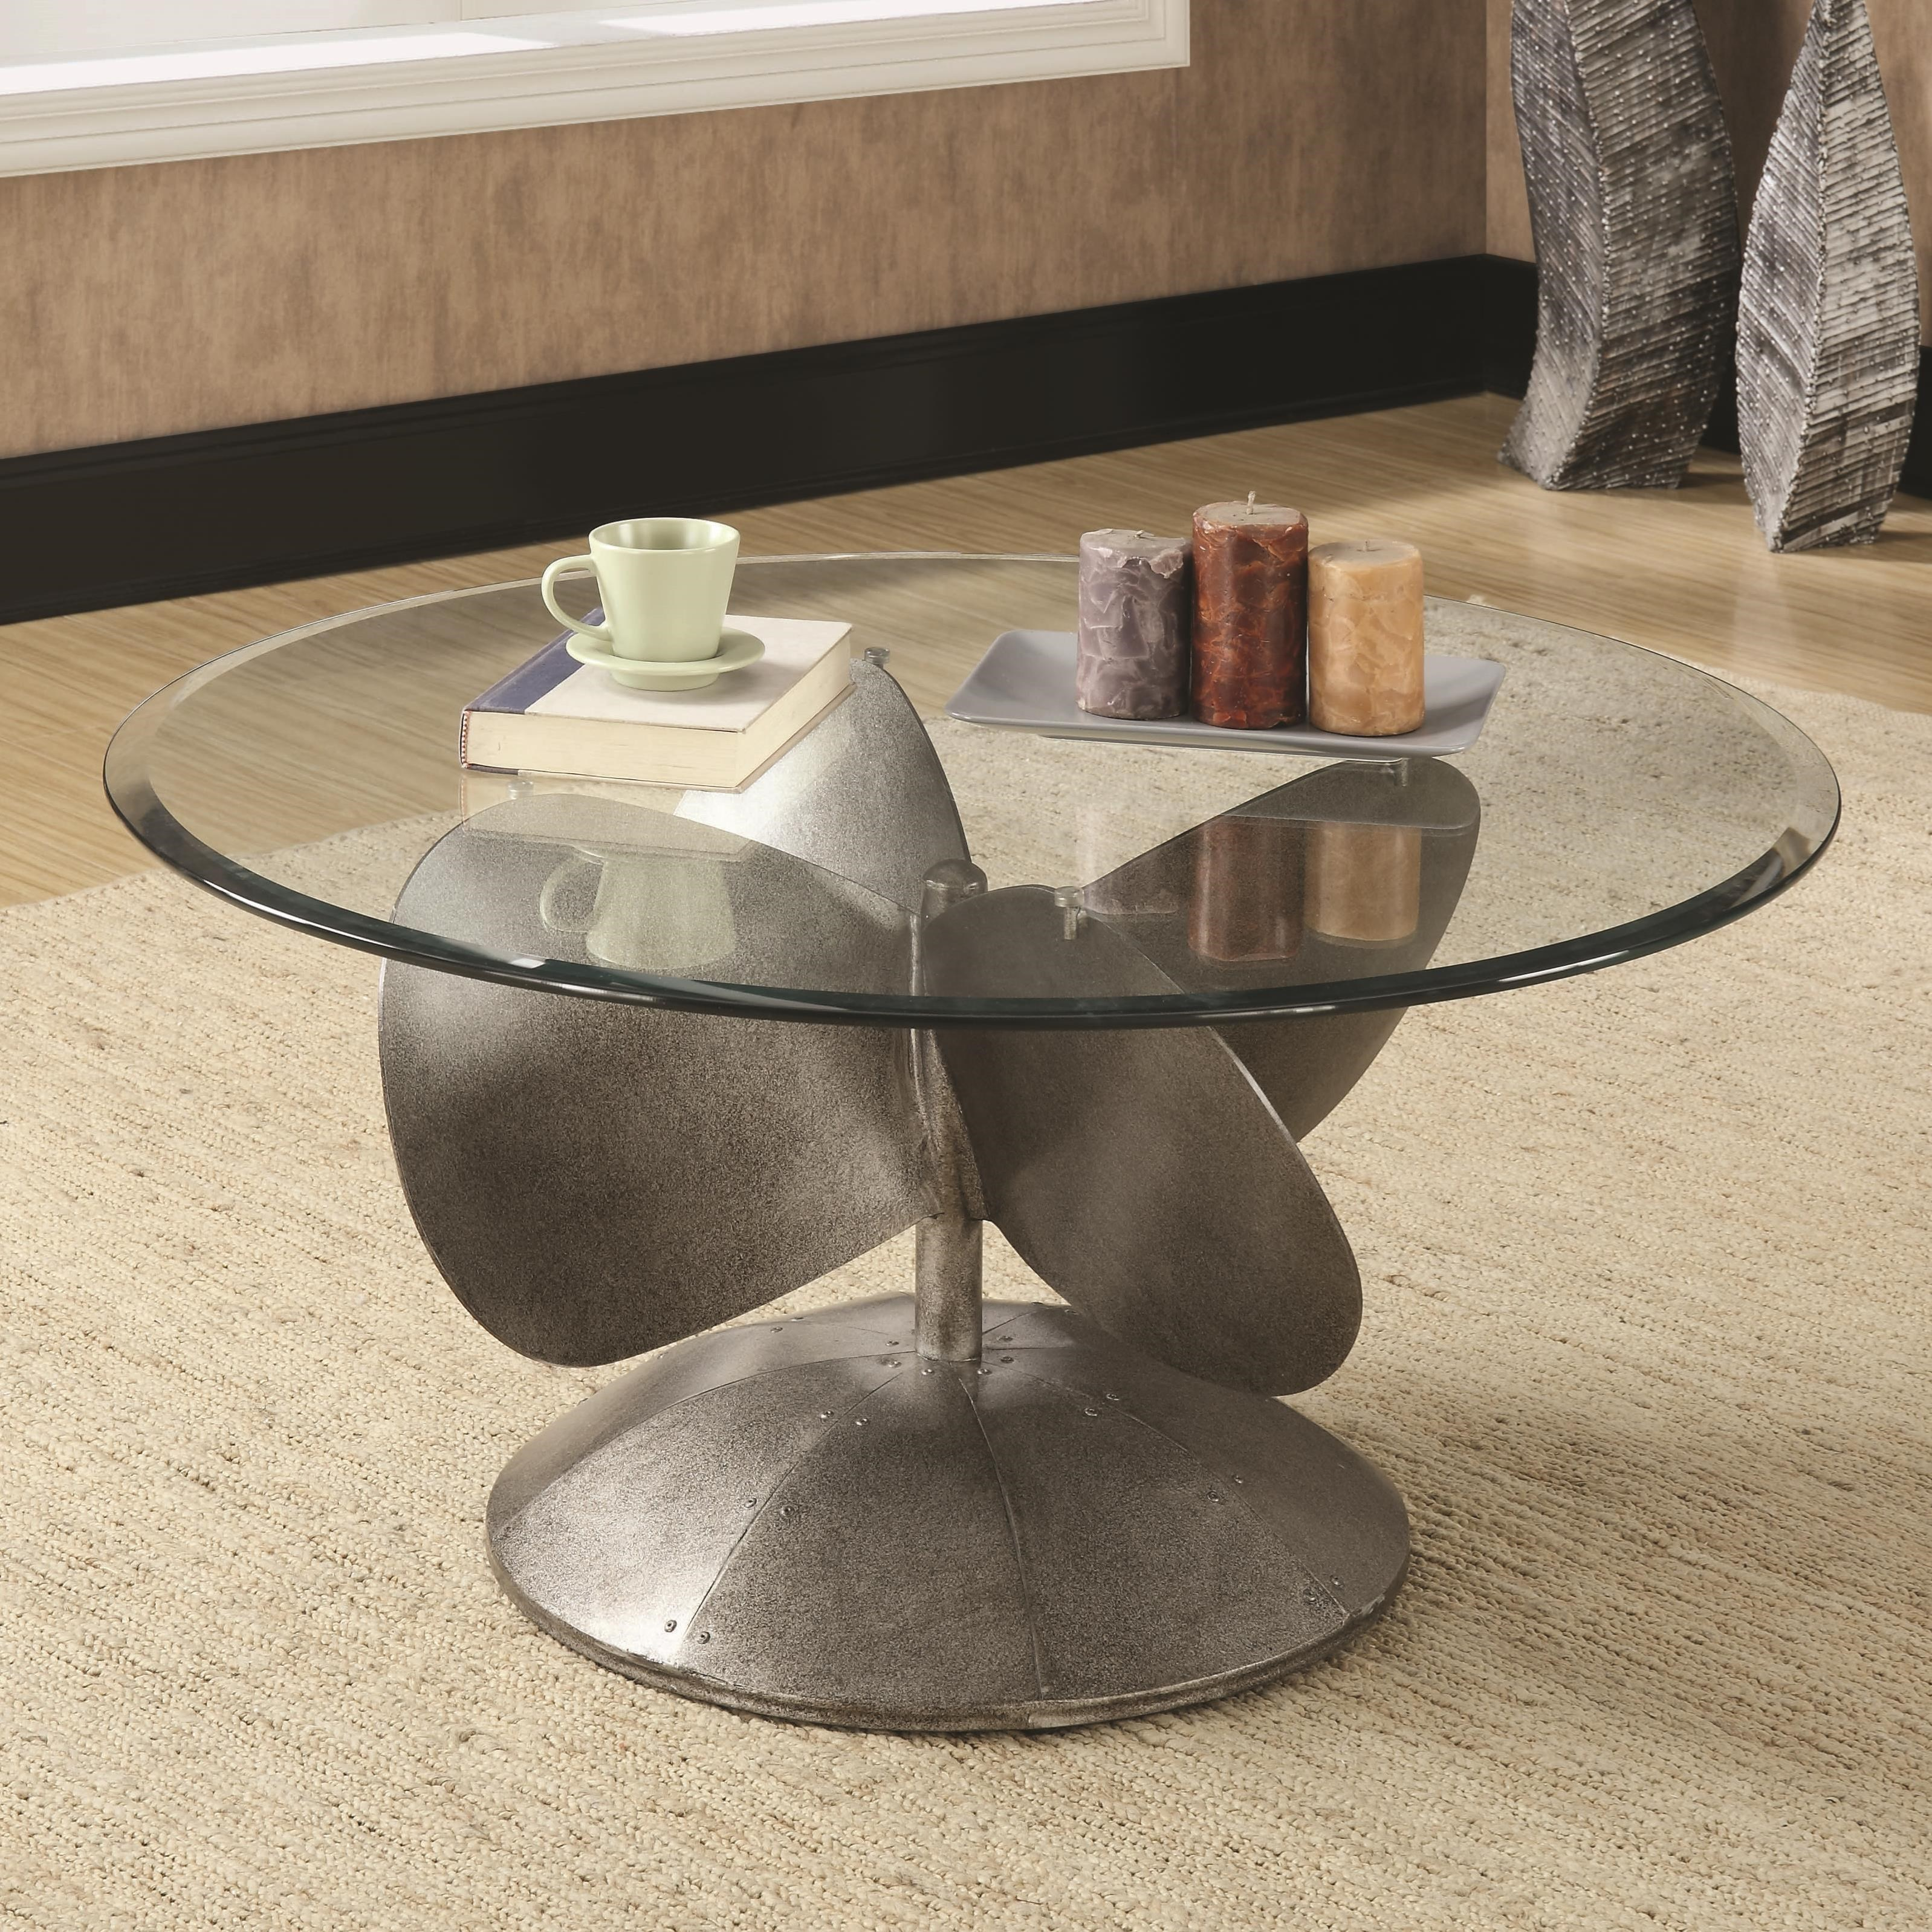 Coaster Accent Tables 704558 Industrial Coffee Table With Propeller Base Dunk Bright